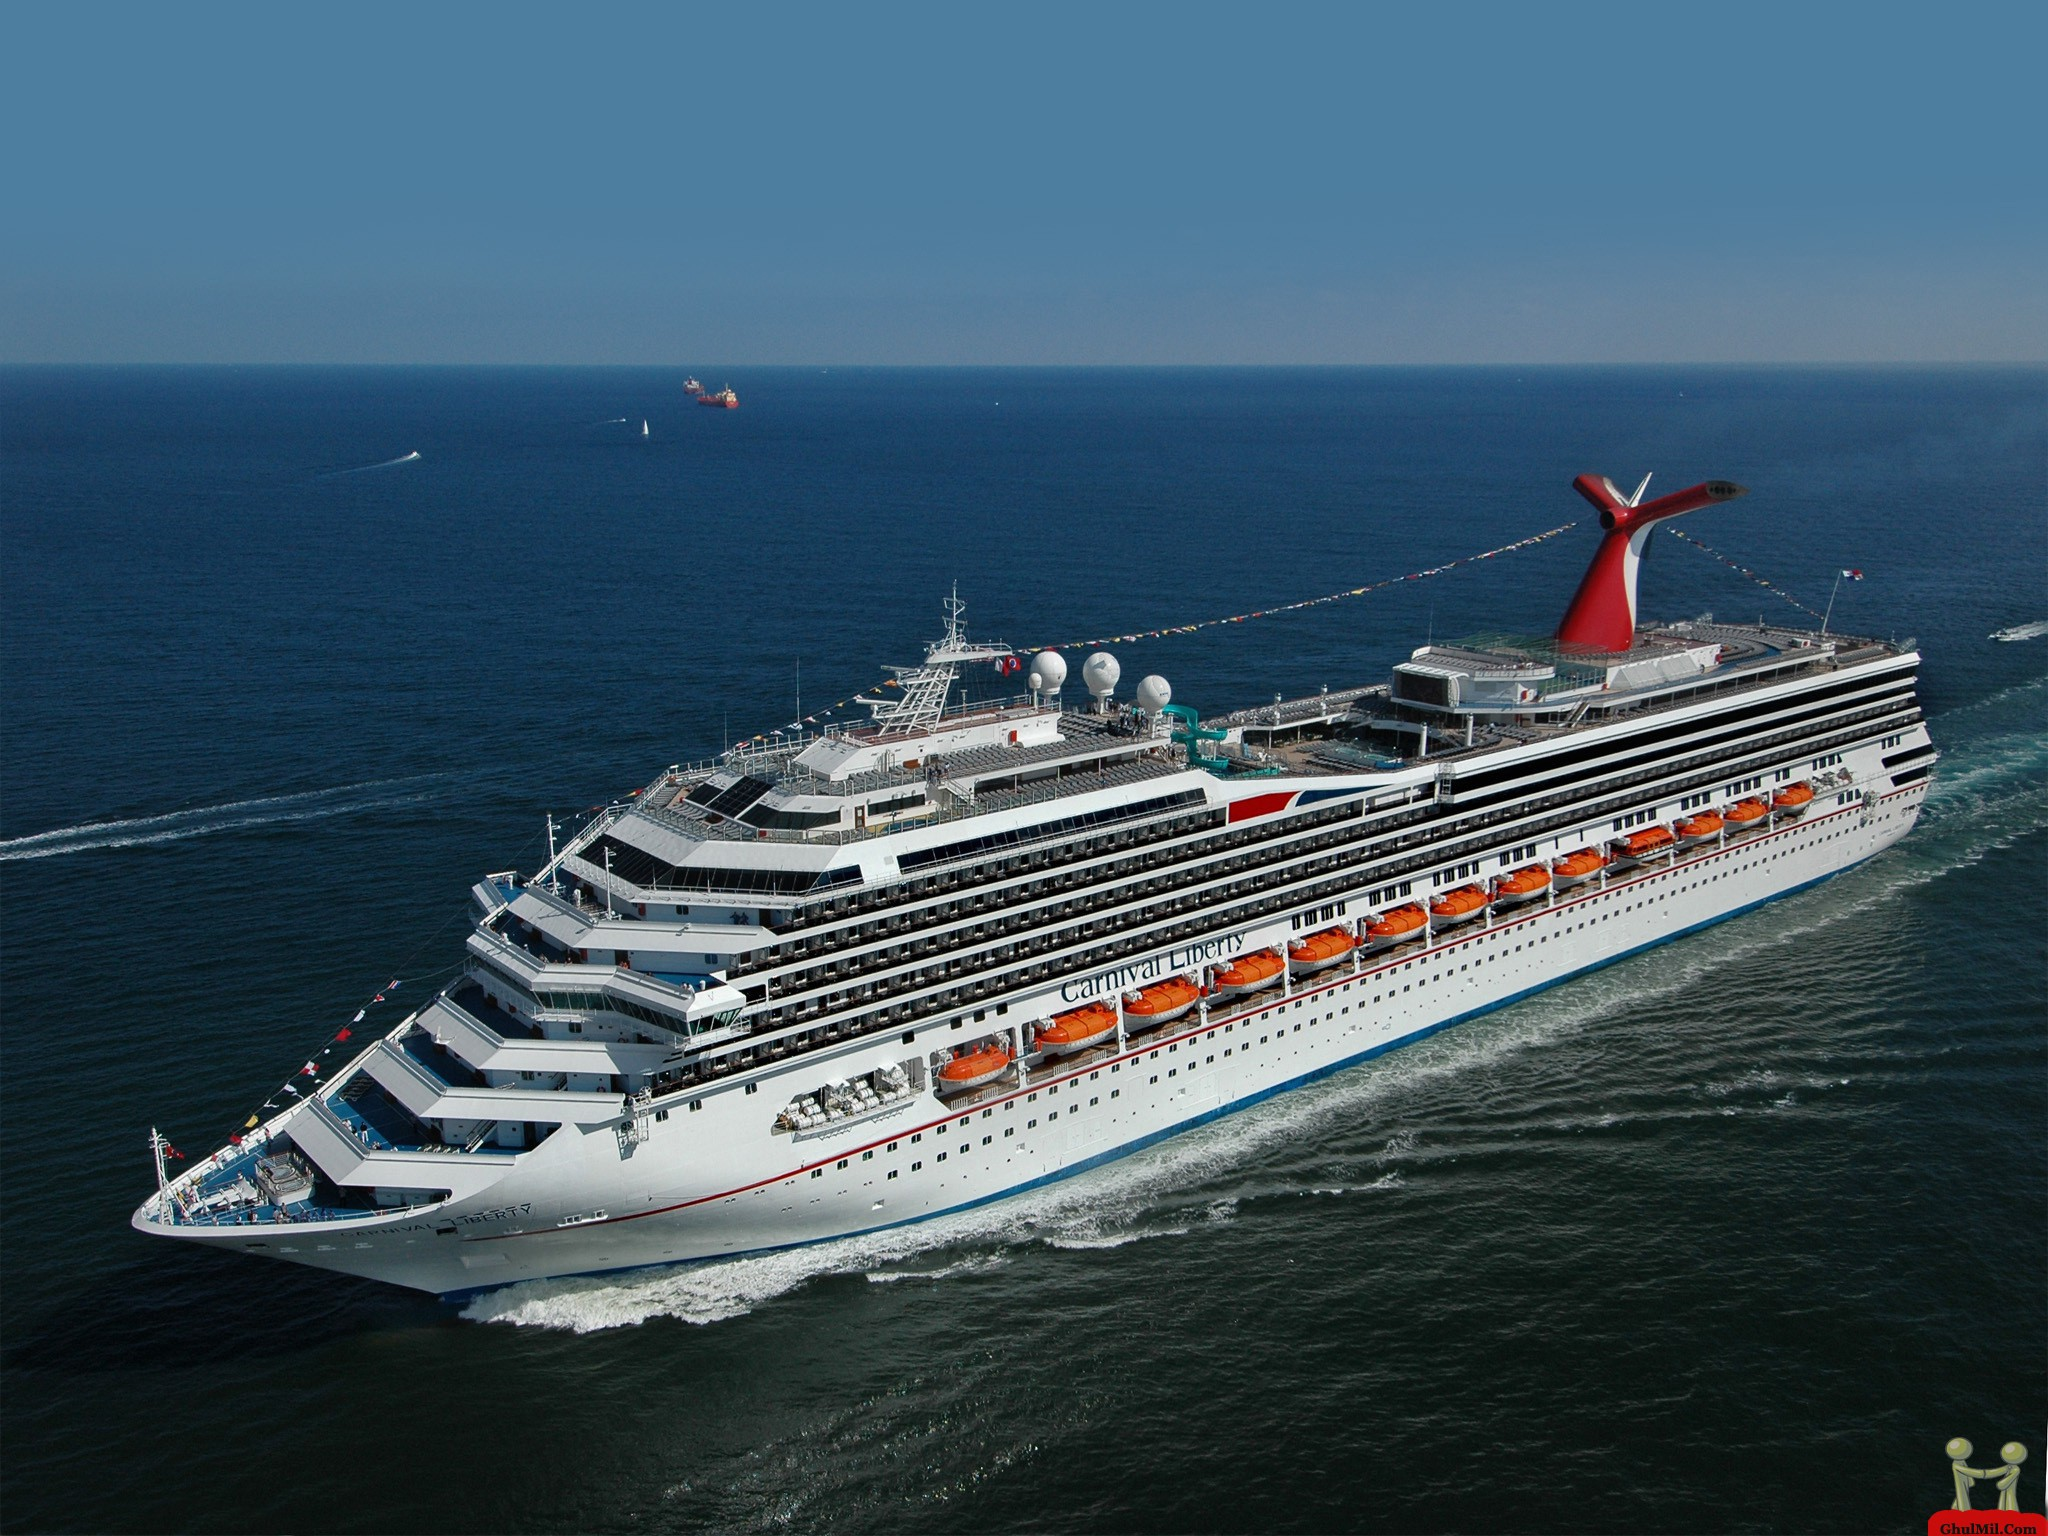 carnival liberty cruise ship beautiful hd wallpapers 2048x1536